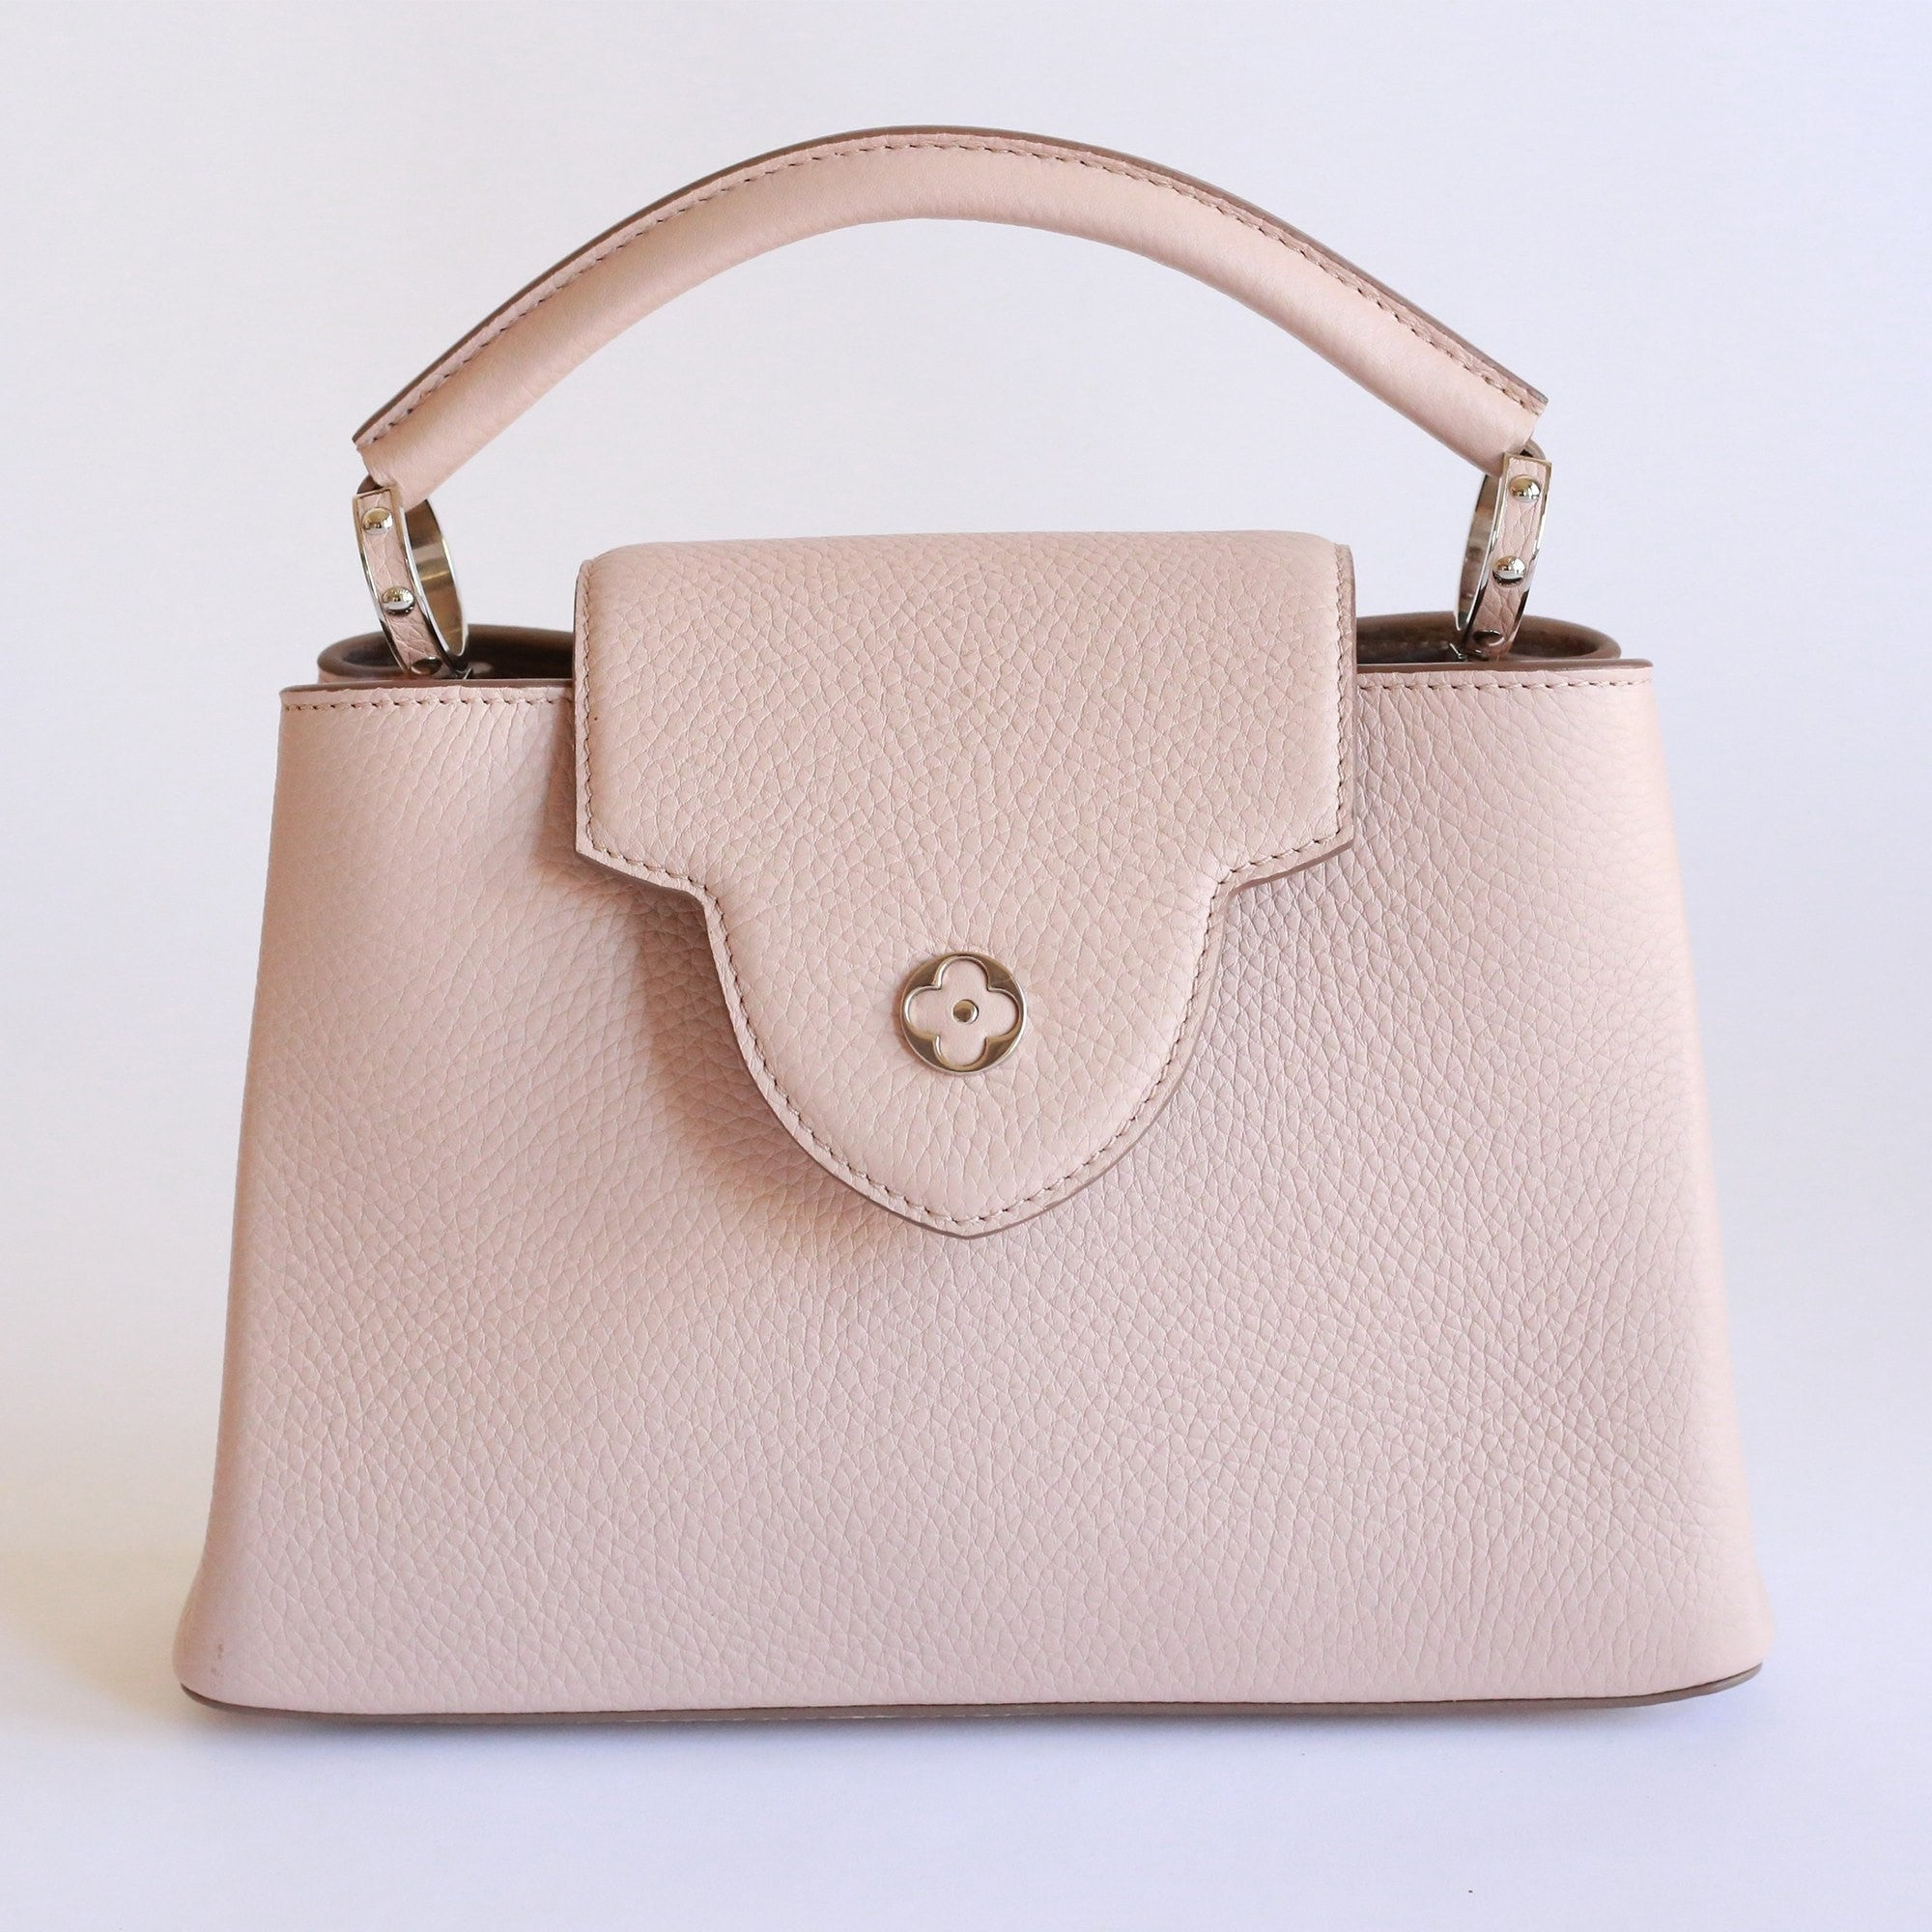 Dissapointed with Capucines PM - PurseForum